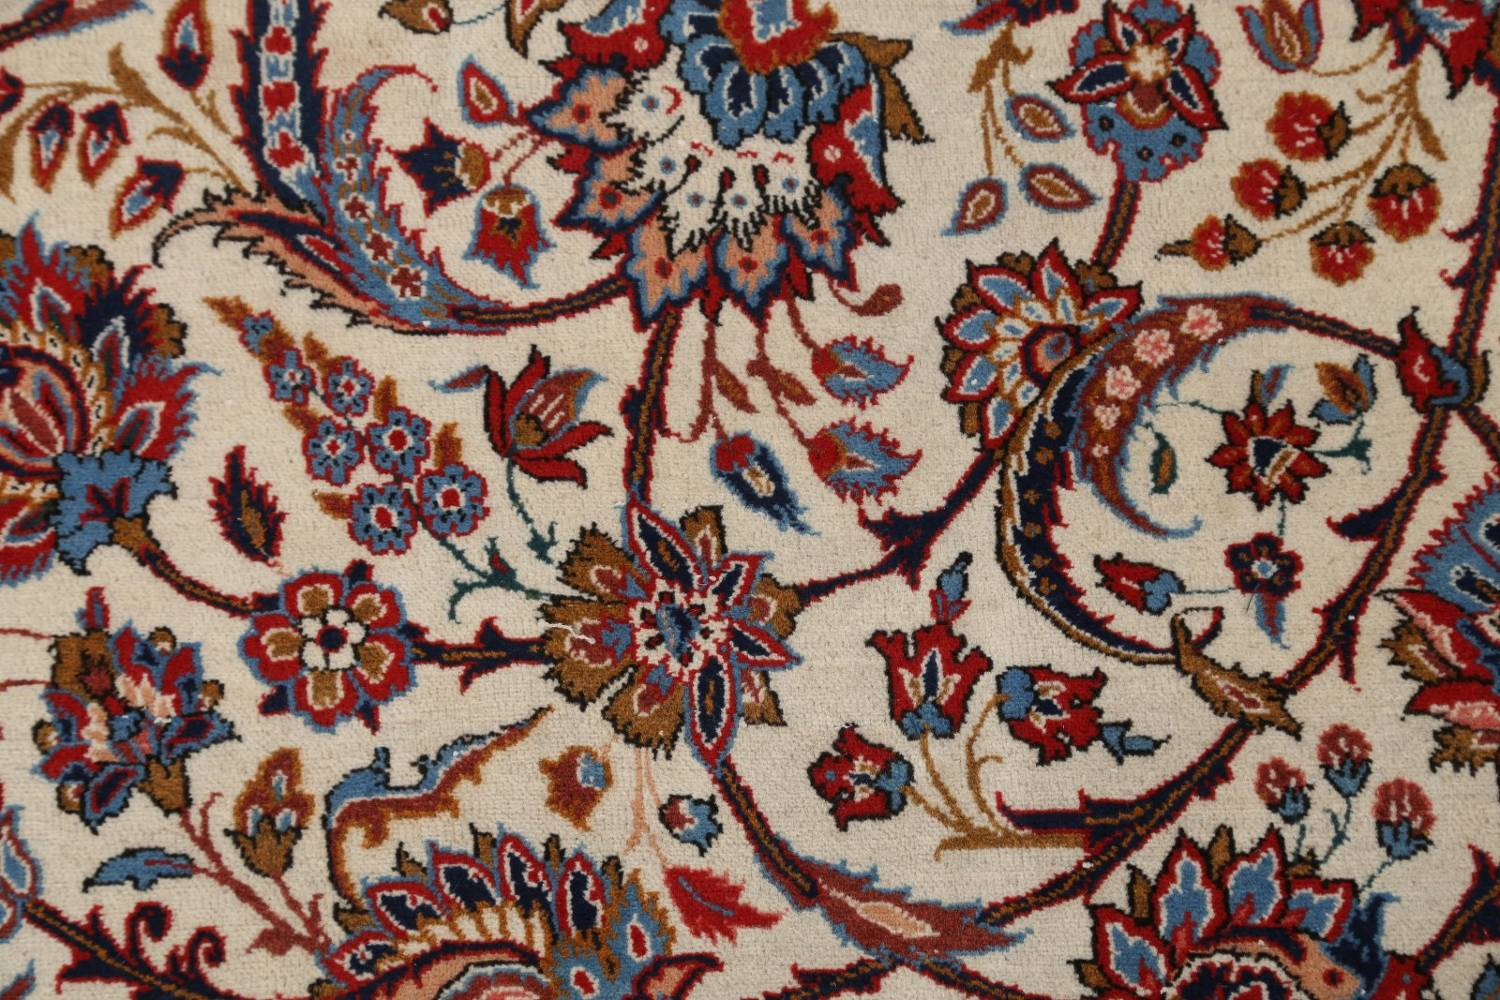 Antique Floral 10x16 Isfahan Persian Area Rug image 8